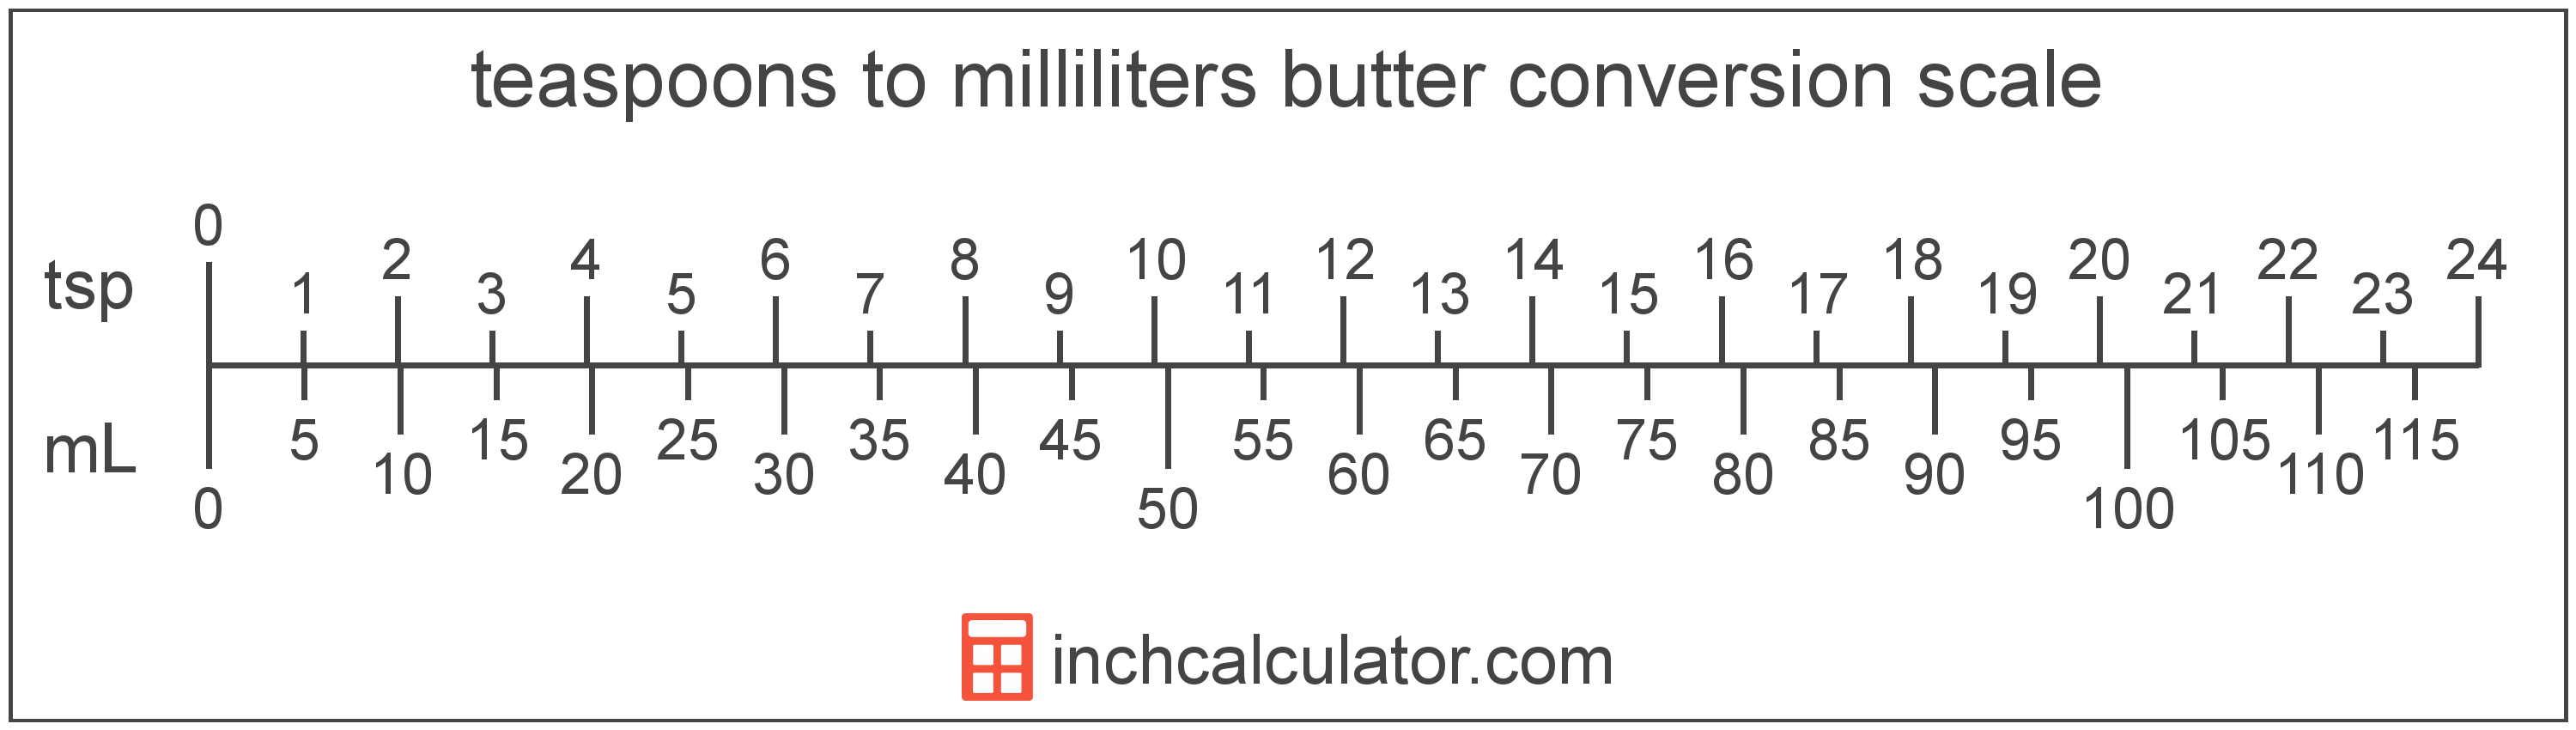 conversion scale showing milliliters and equivalent teaspoons butter values